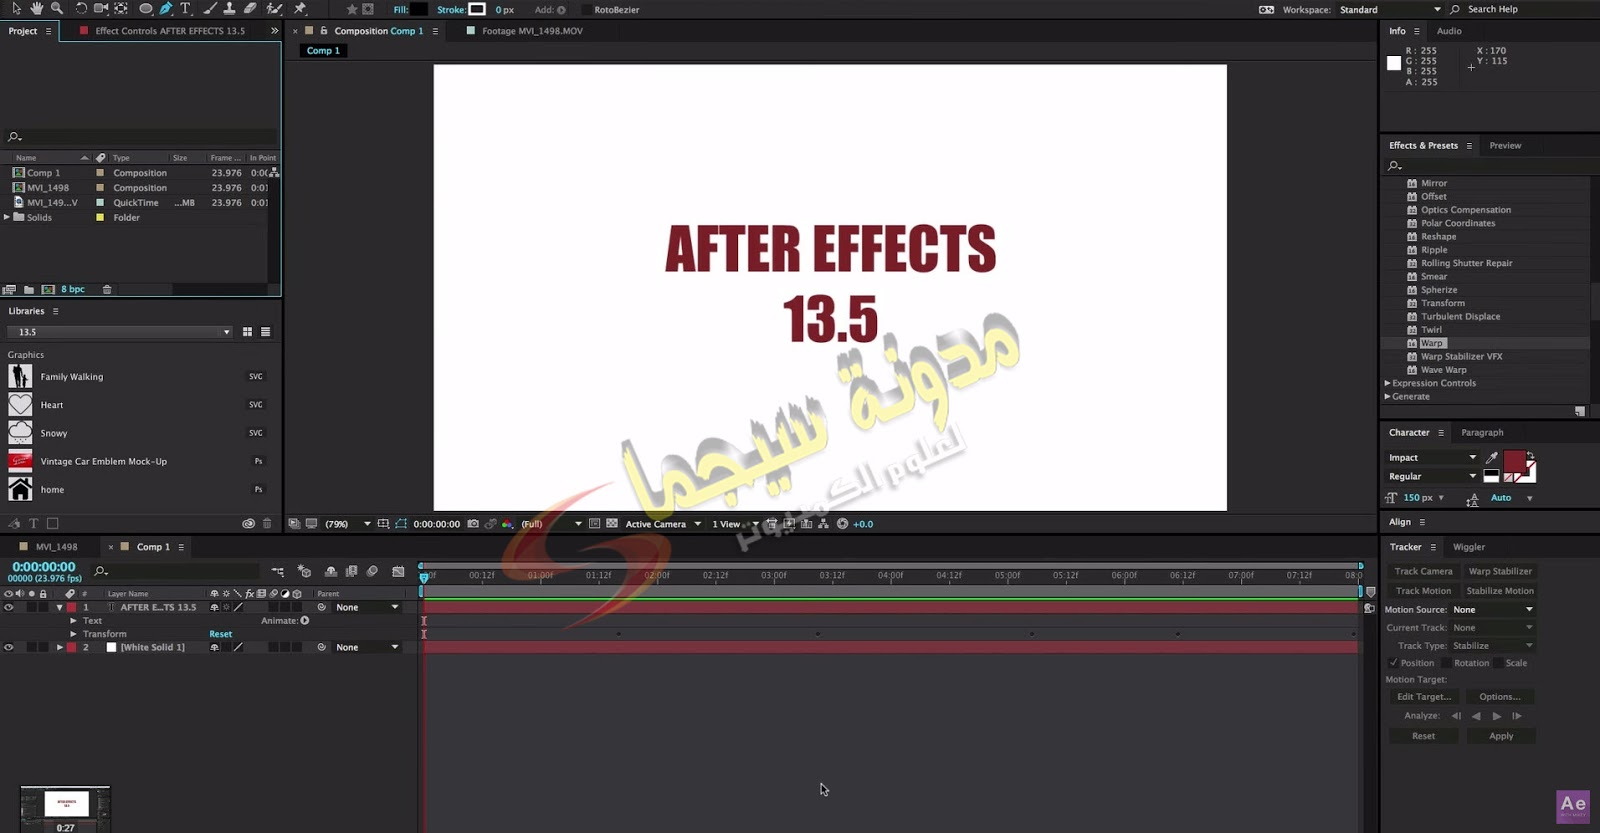 Twitch download after effects cc casualgett for Adobe after effects templates torrent